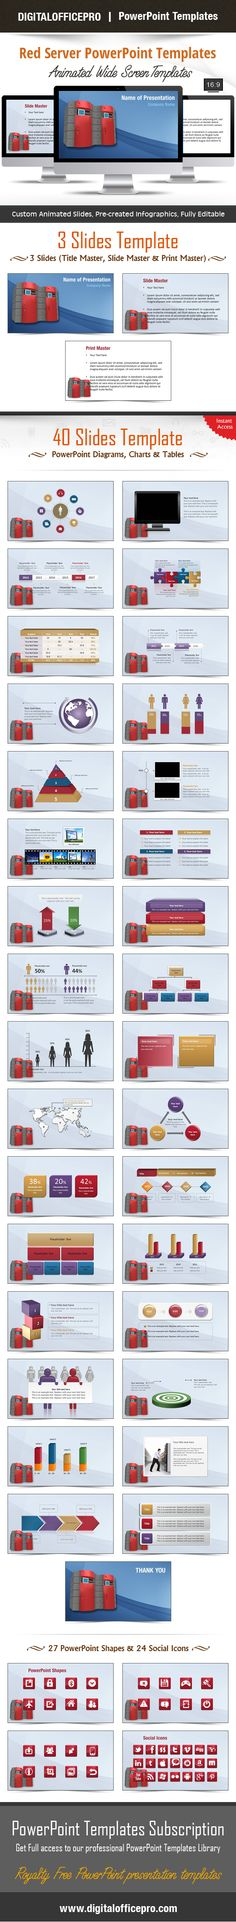 Impress and Engage your audience with Red Server PowerPoint Template and Red Server PowerPoint Backgrounds from DigitalOfficePro. Each template comes with a set of PowerPoint Diagrams, Charts & Shapes and are available for instant download.